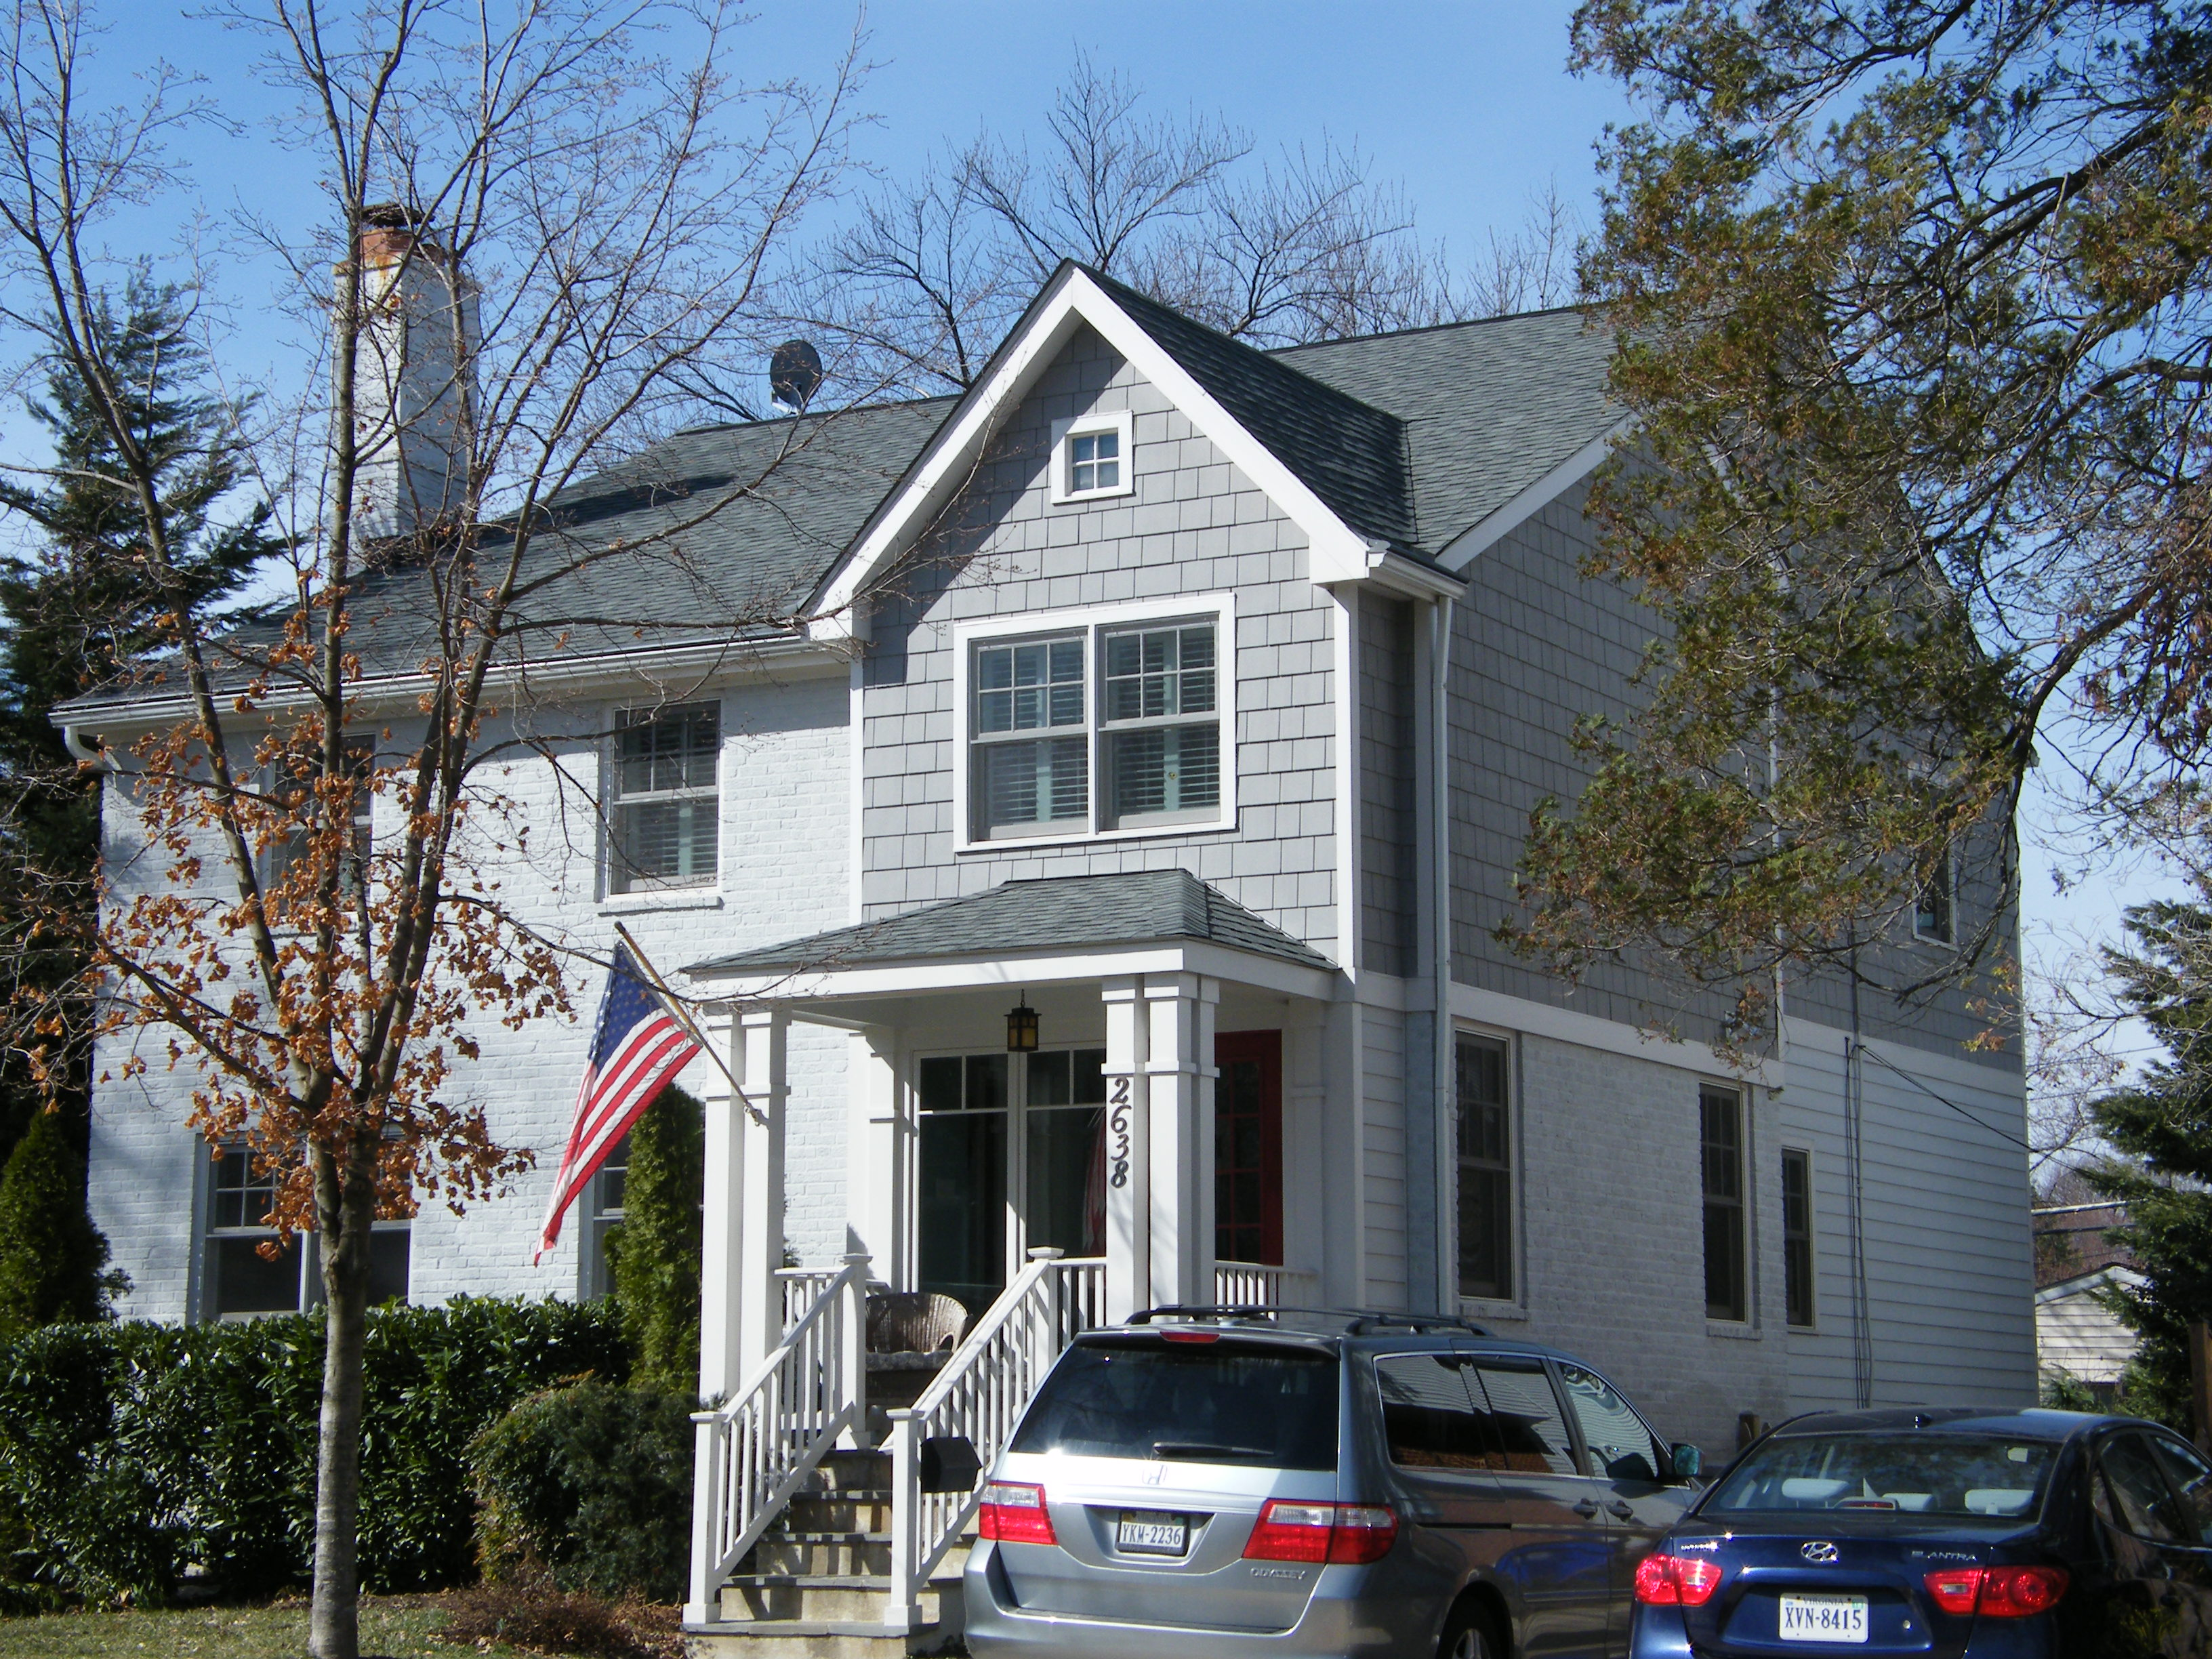 Three Story Addition To Typical Post War Brick Two Story Home The